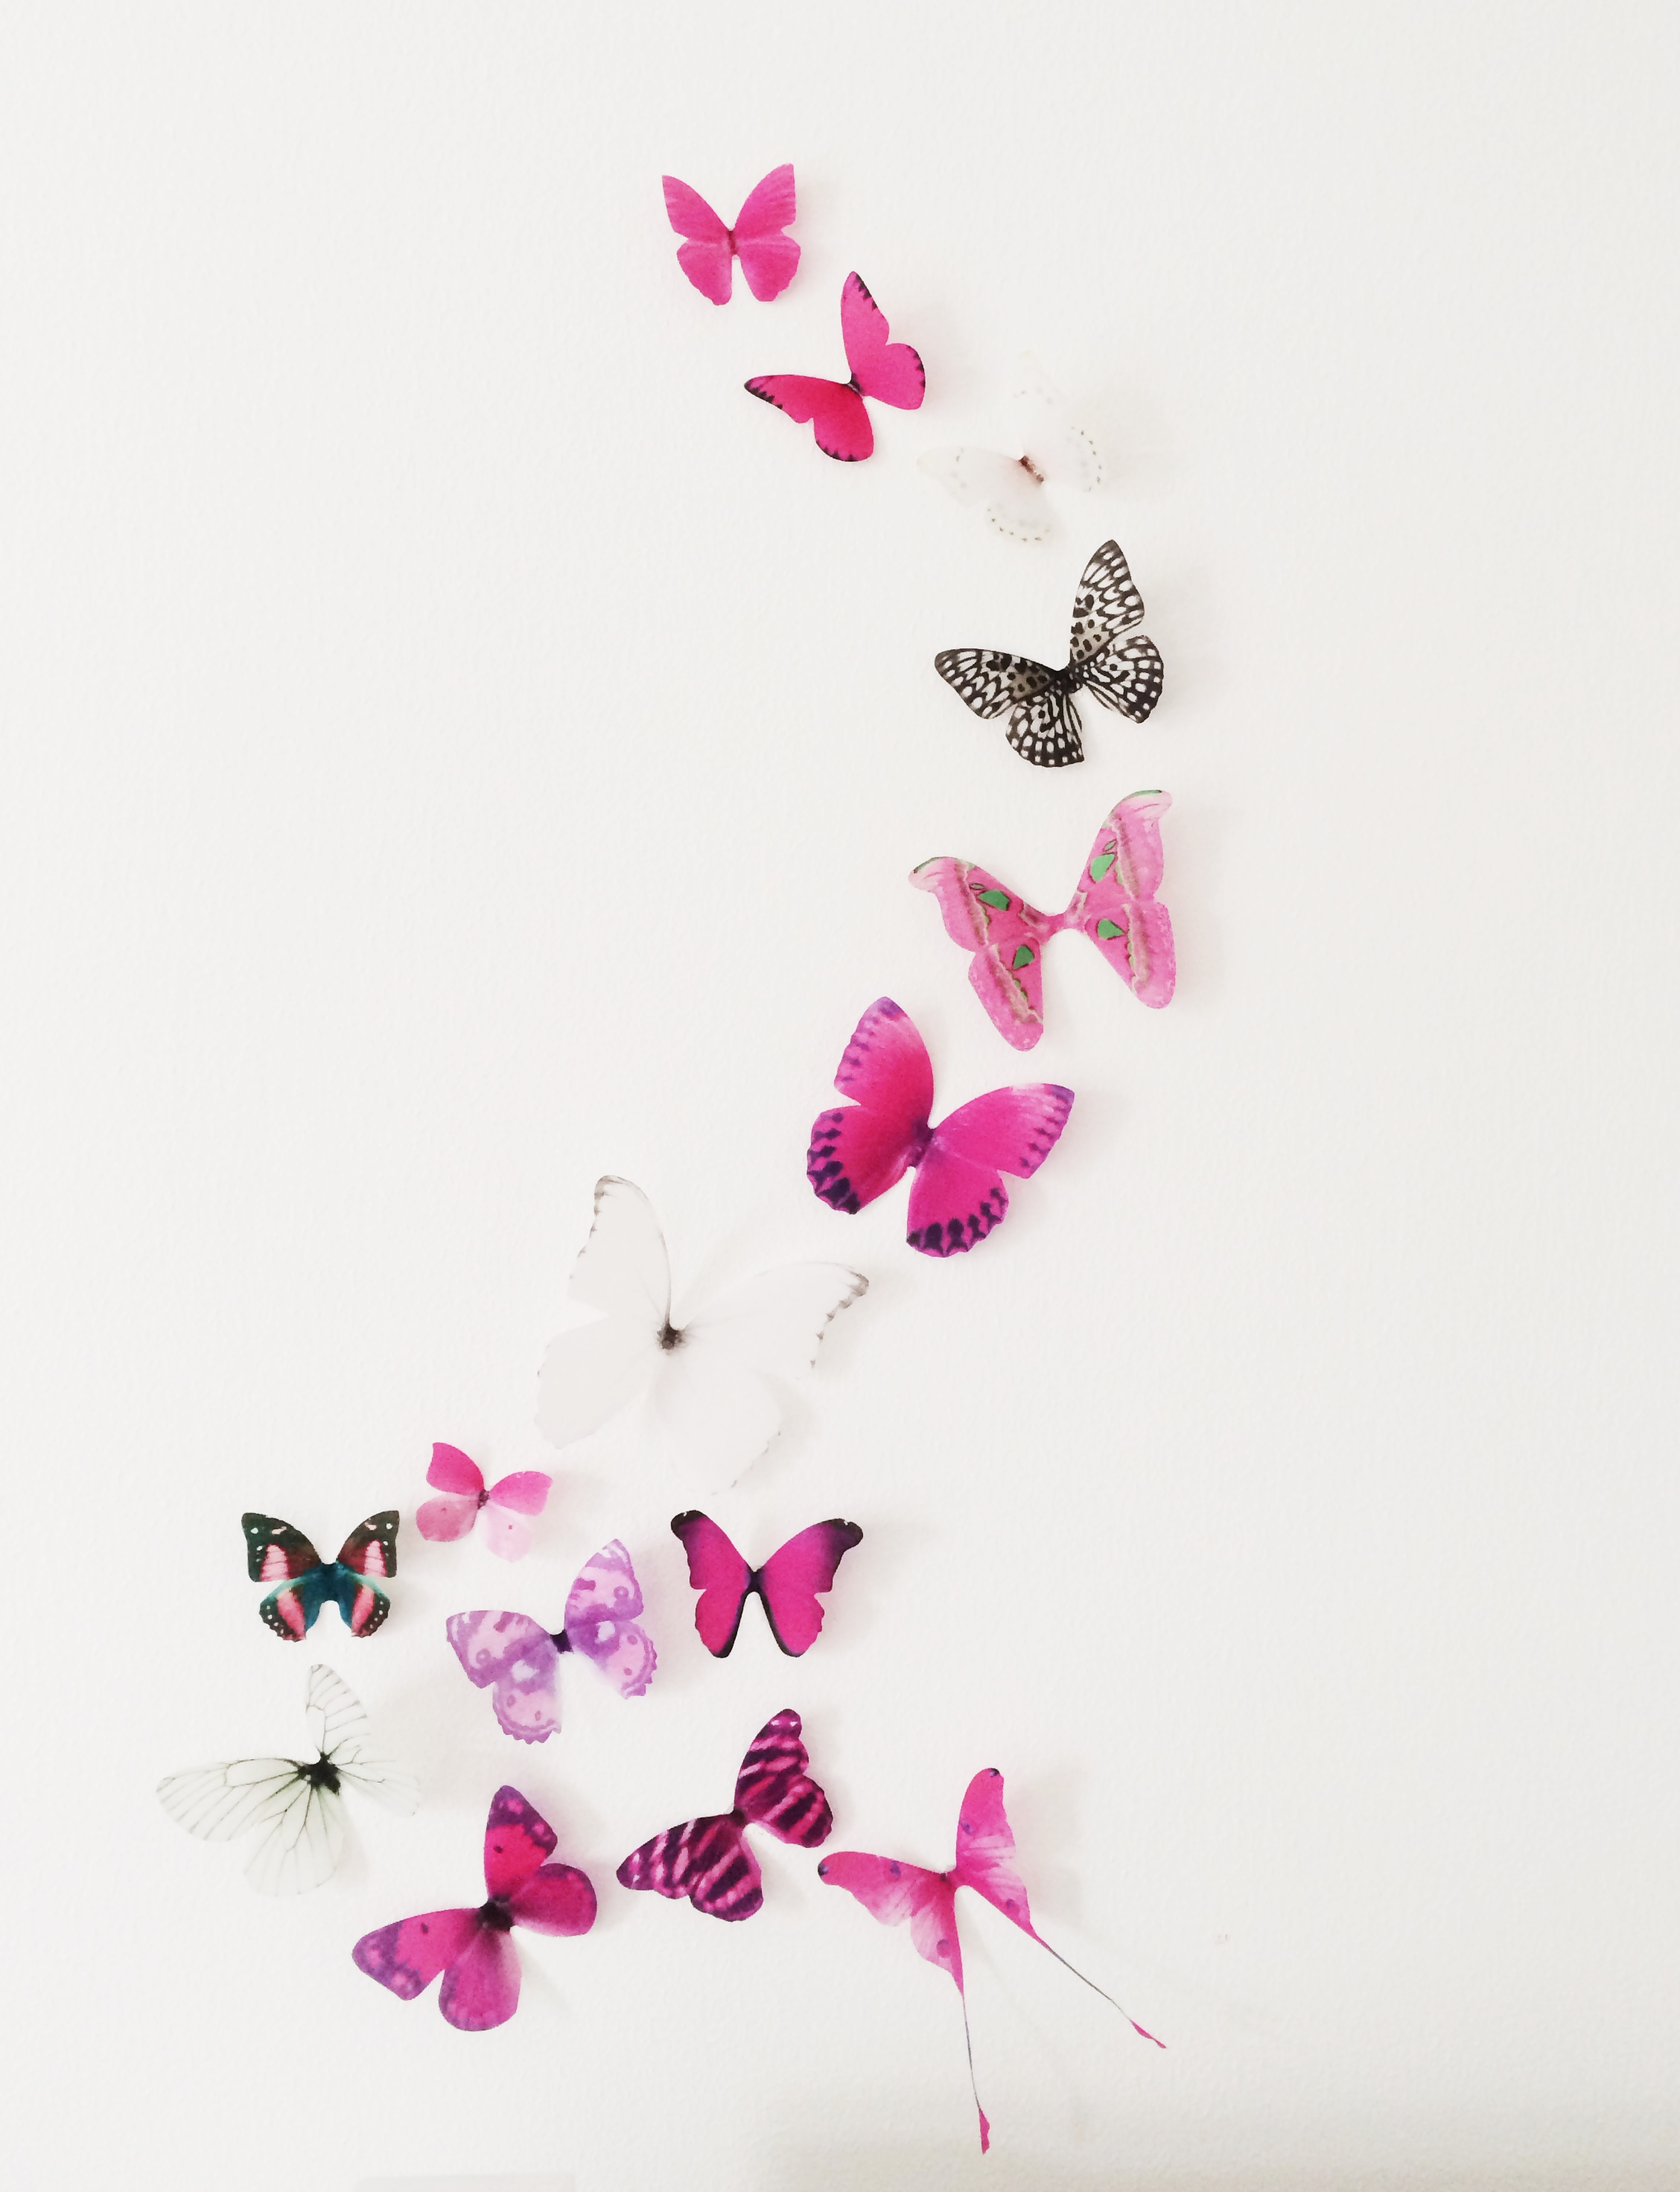 Heidiu0027s Hubbub 3D pink butterfly wall art & Wall Art Wall Stickers and Decals u2013 Kidsu0027 Room Style